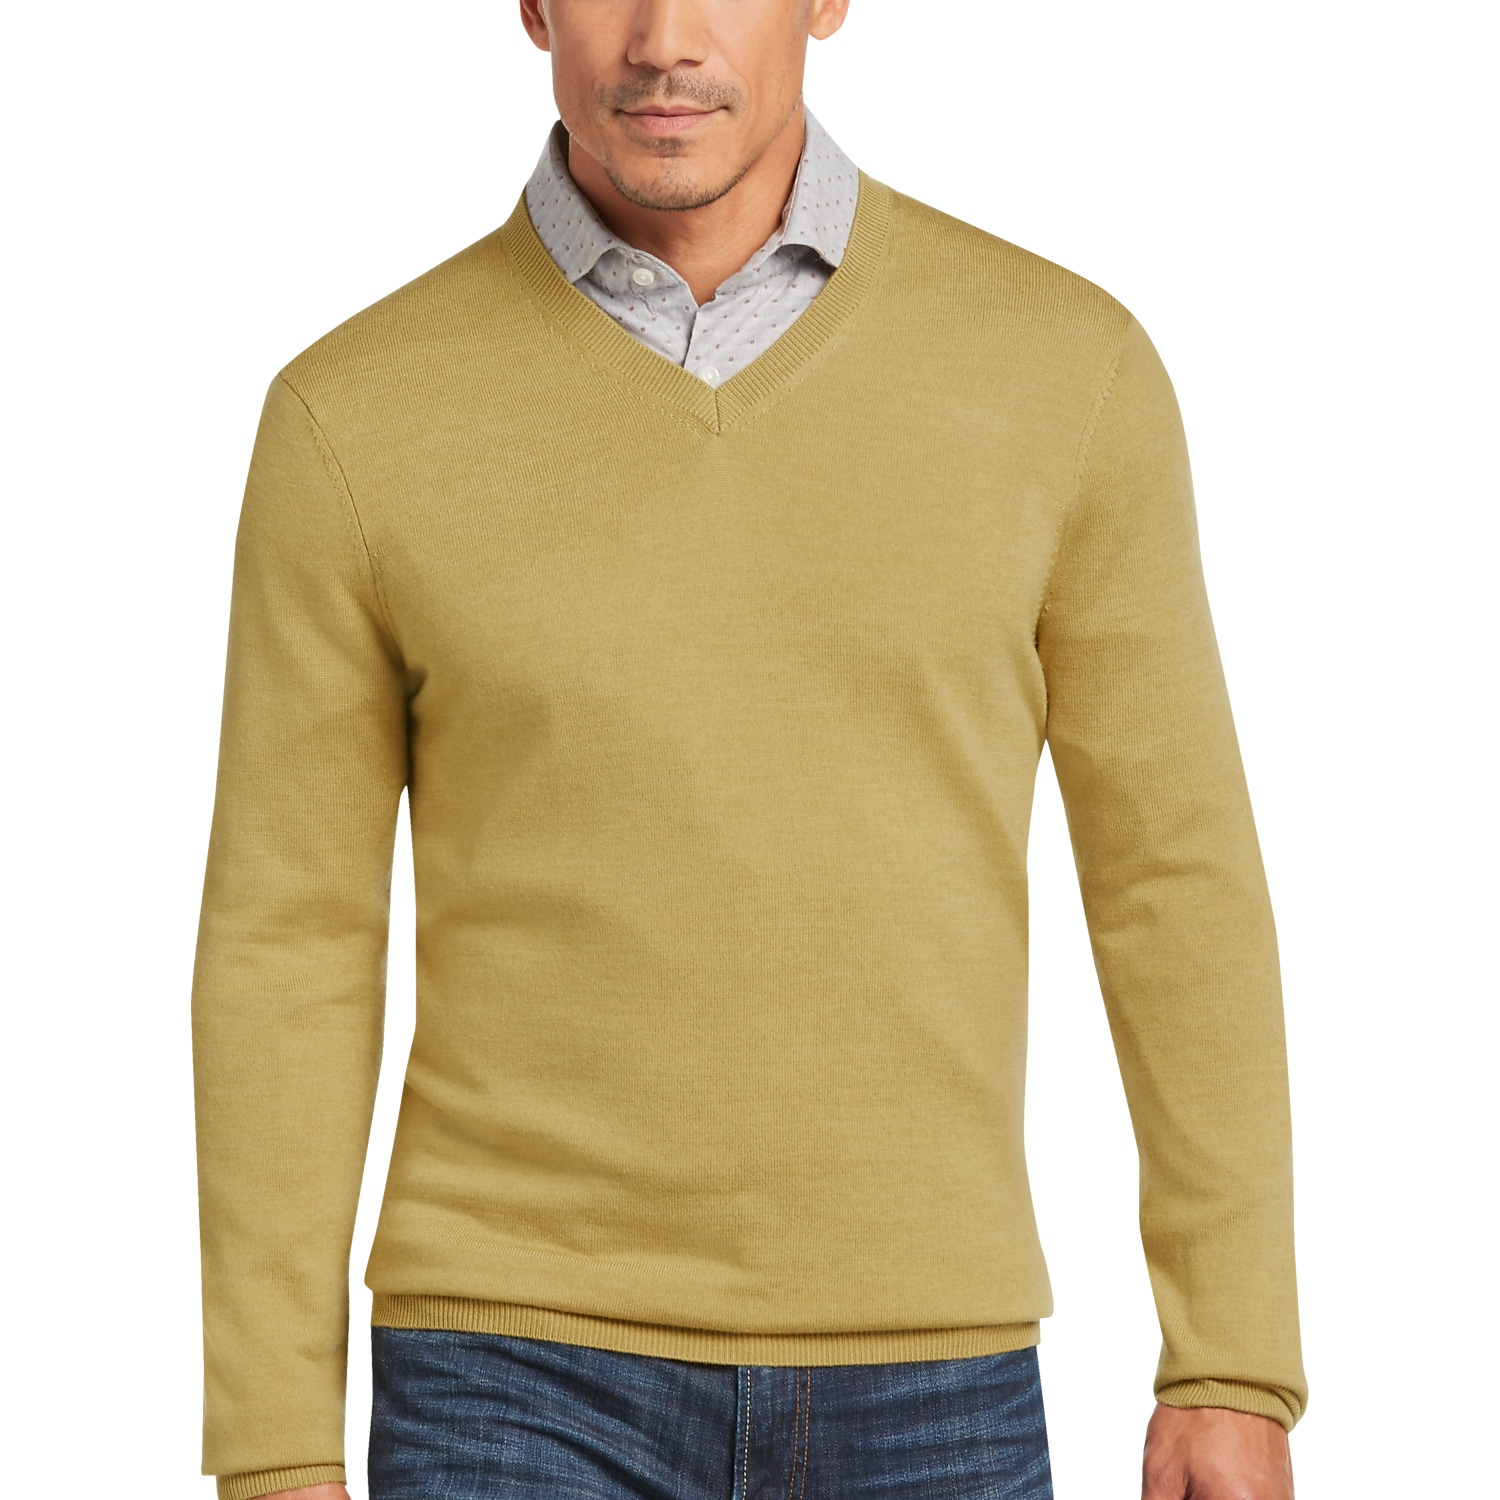 Men's Big & Tall Sweaters - Cashmere, Turtlenecks in XL | Men's ...